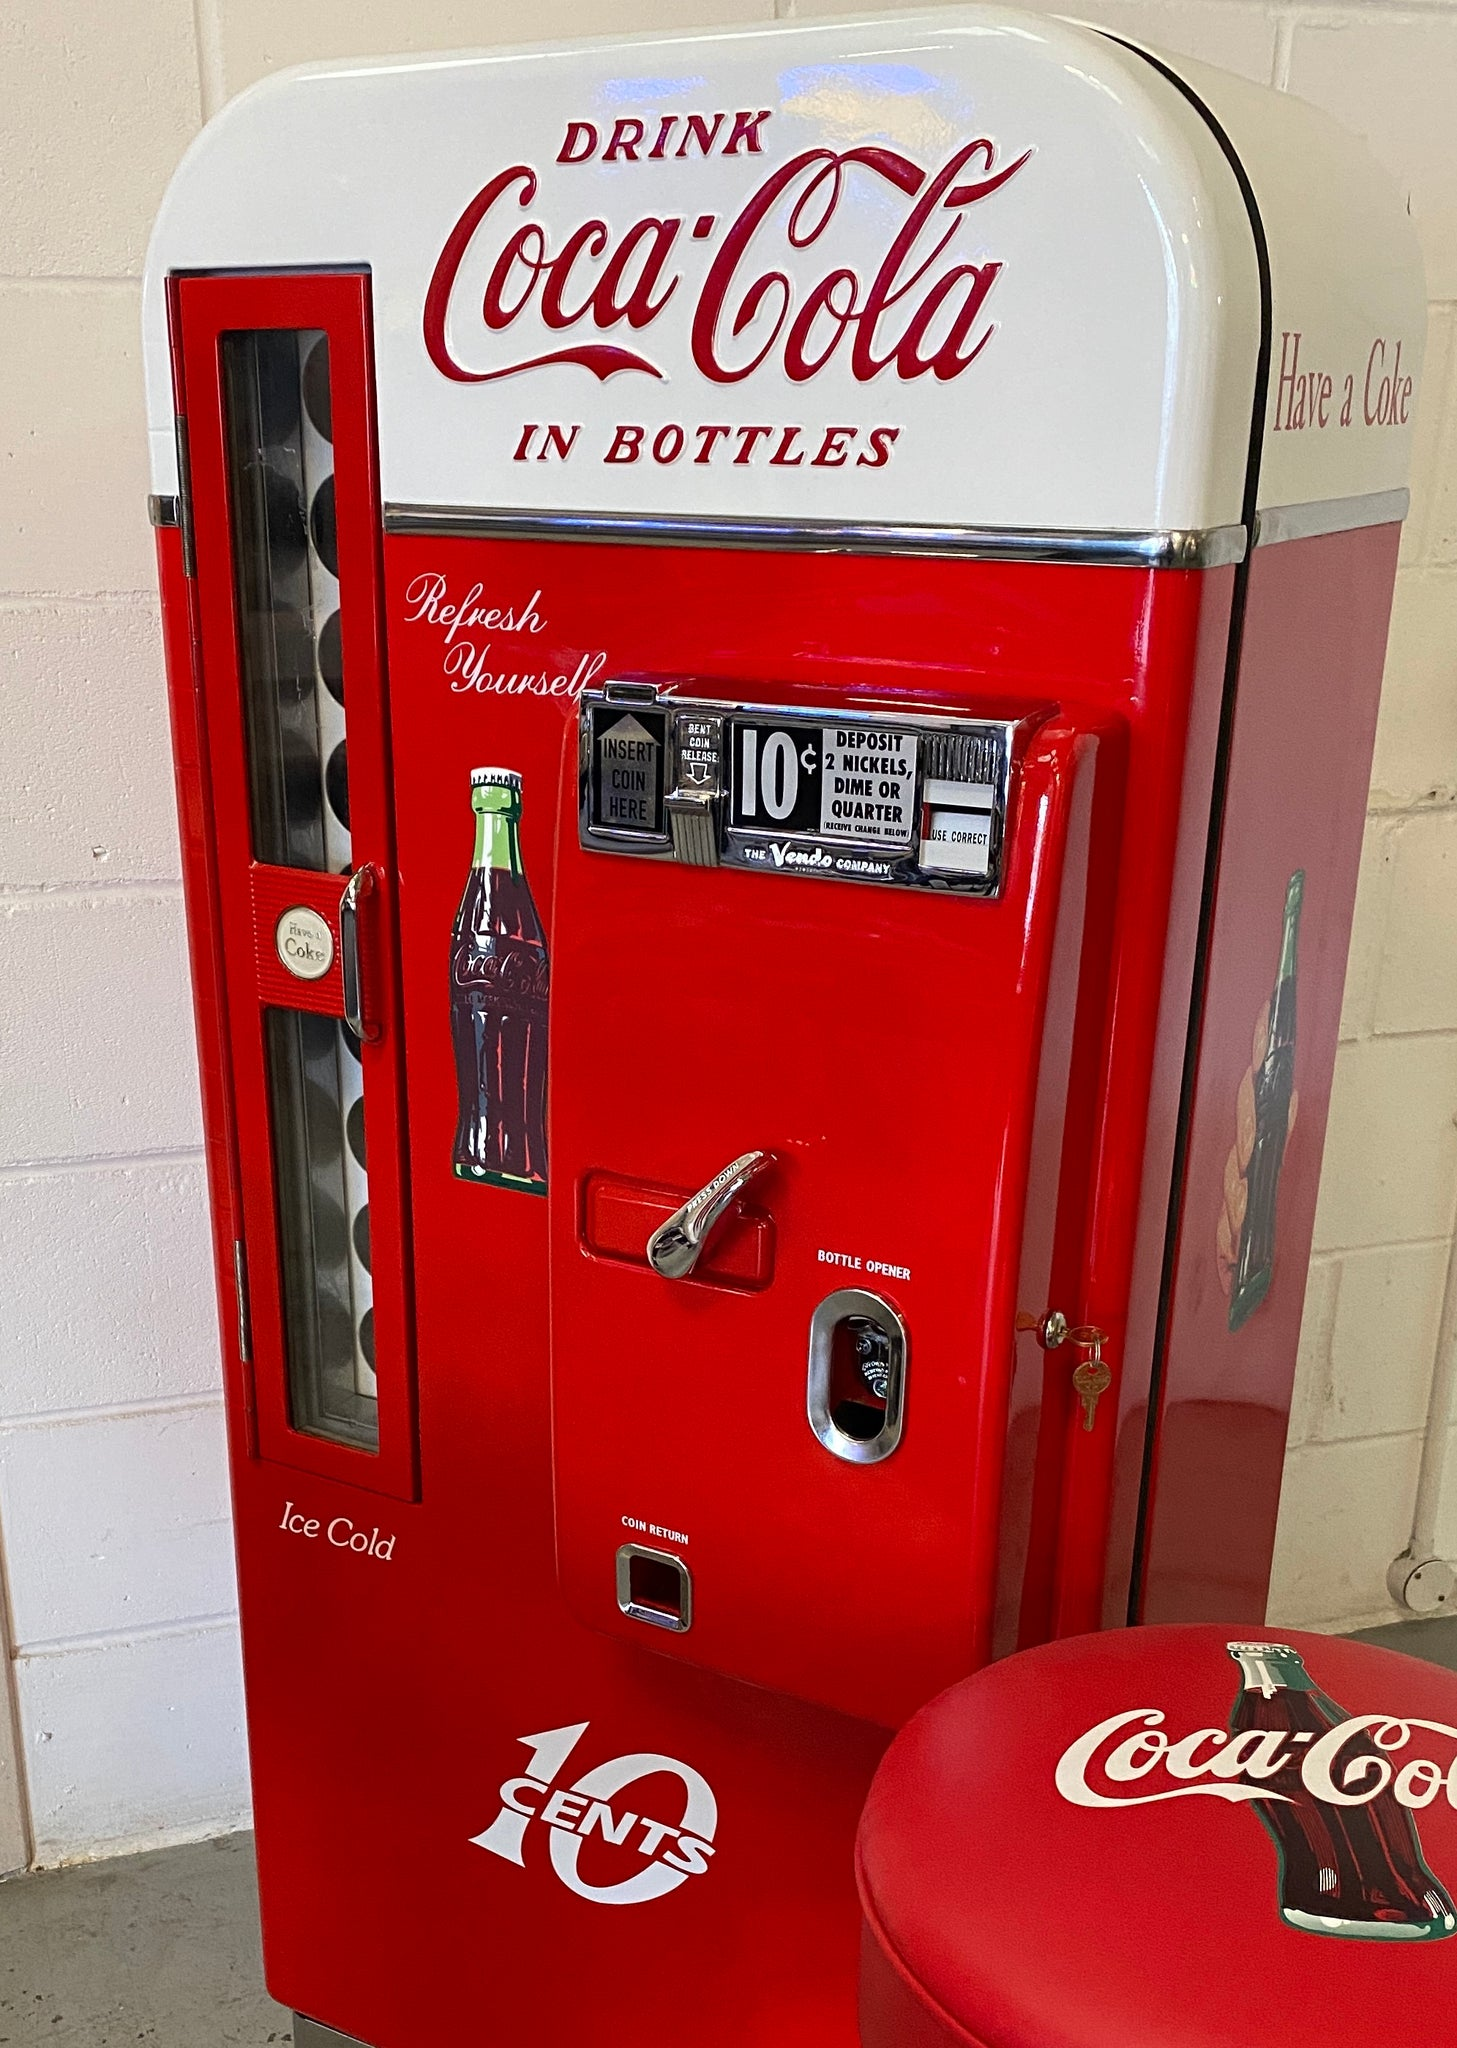 Vintage drinks machines to cool you off after this summer